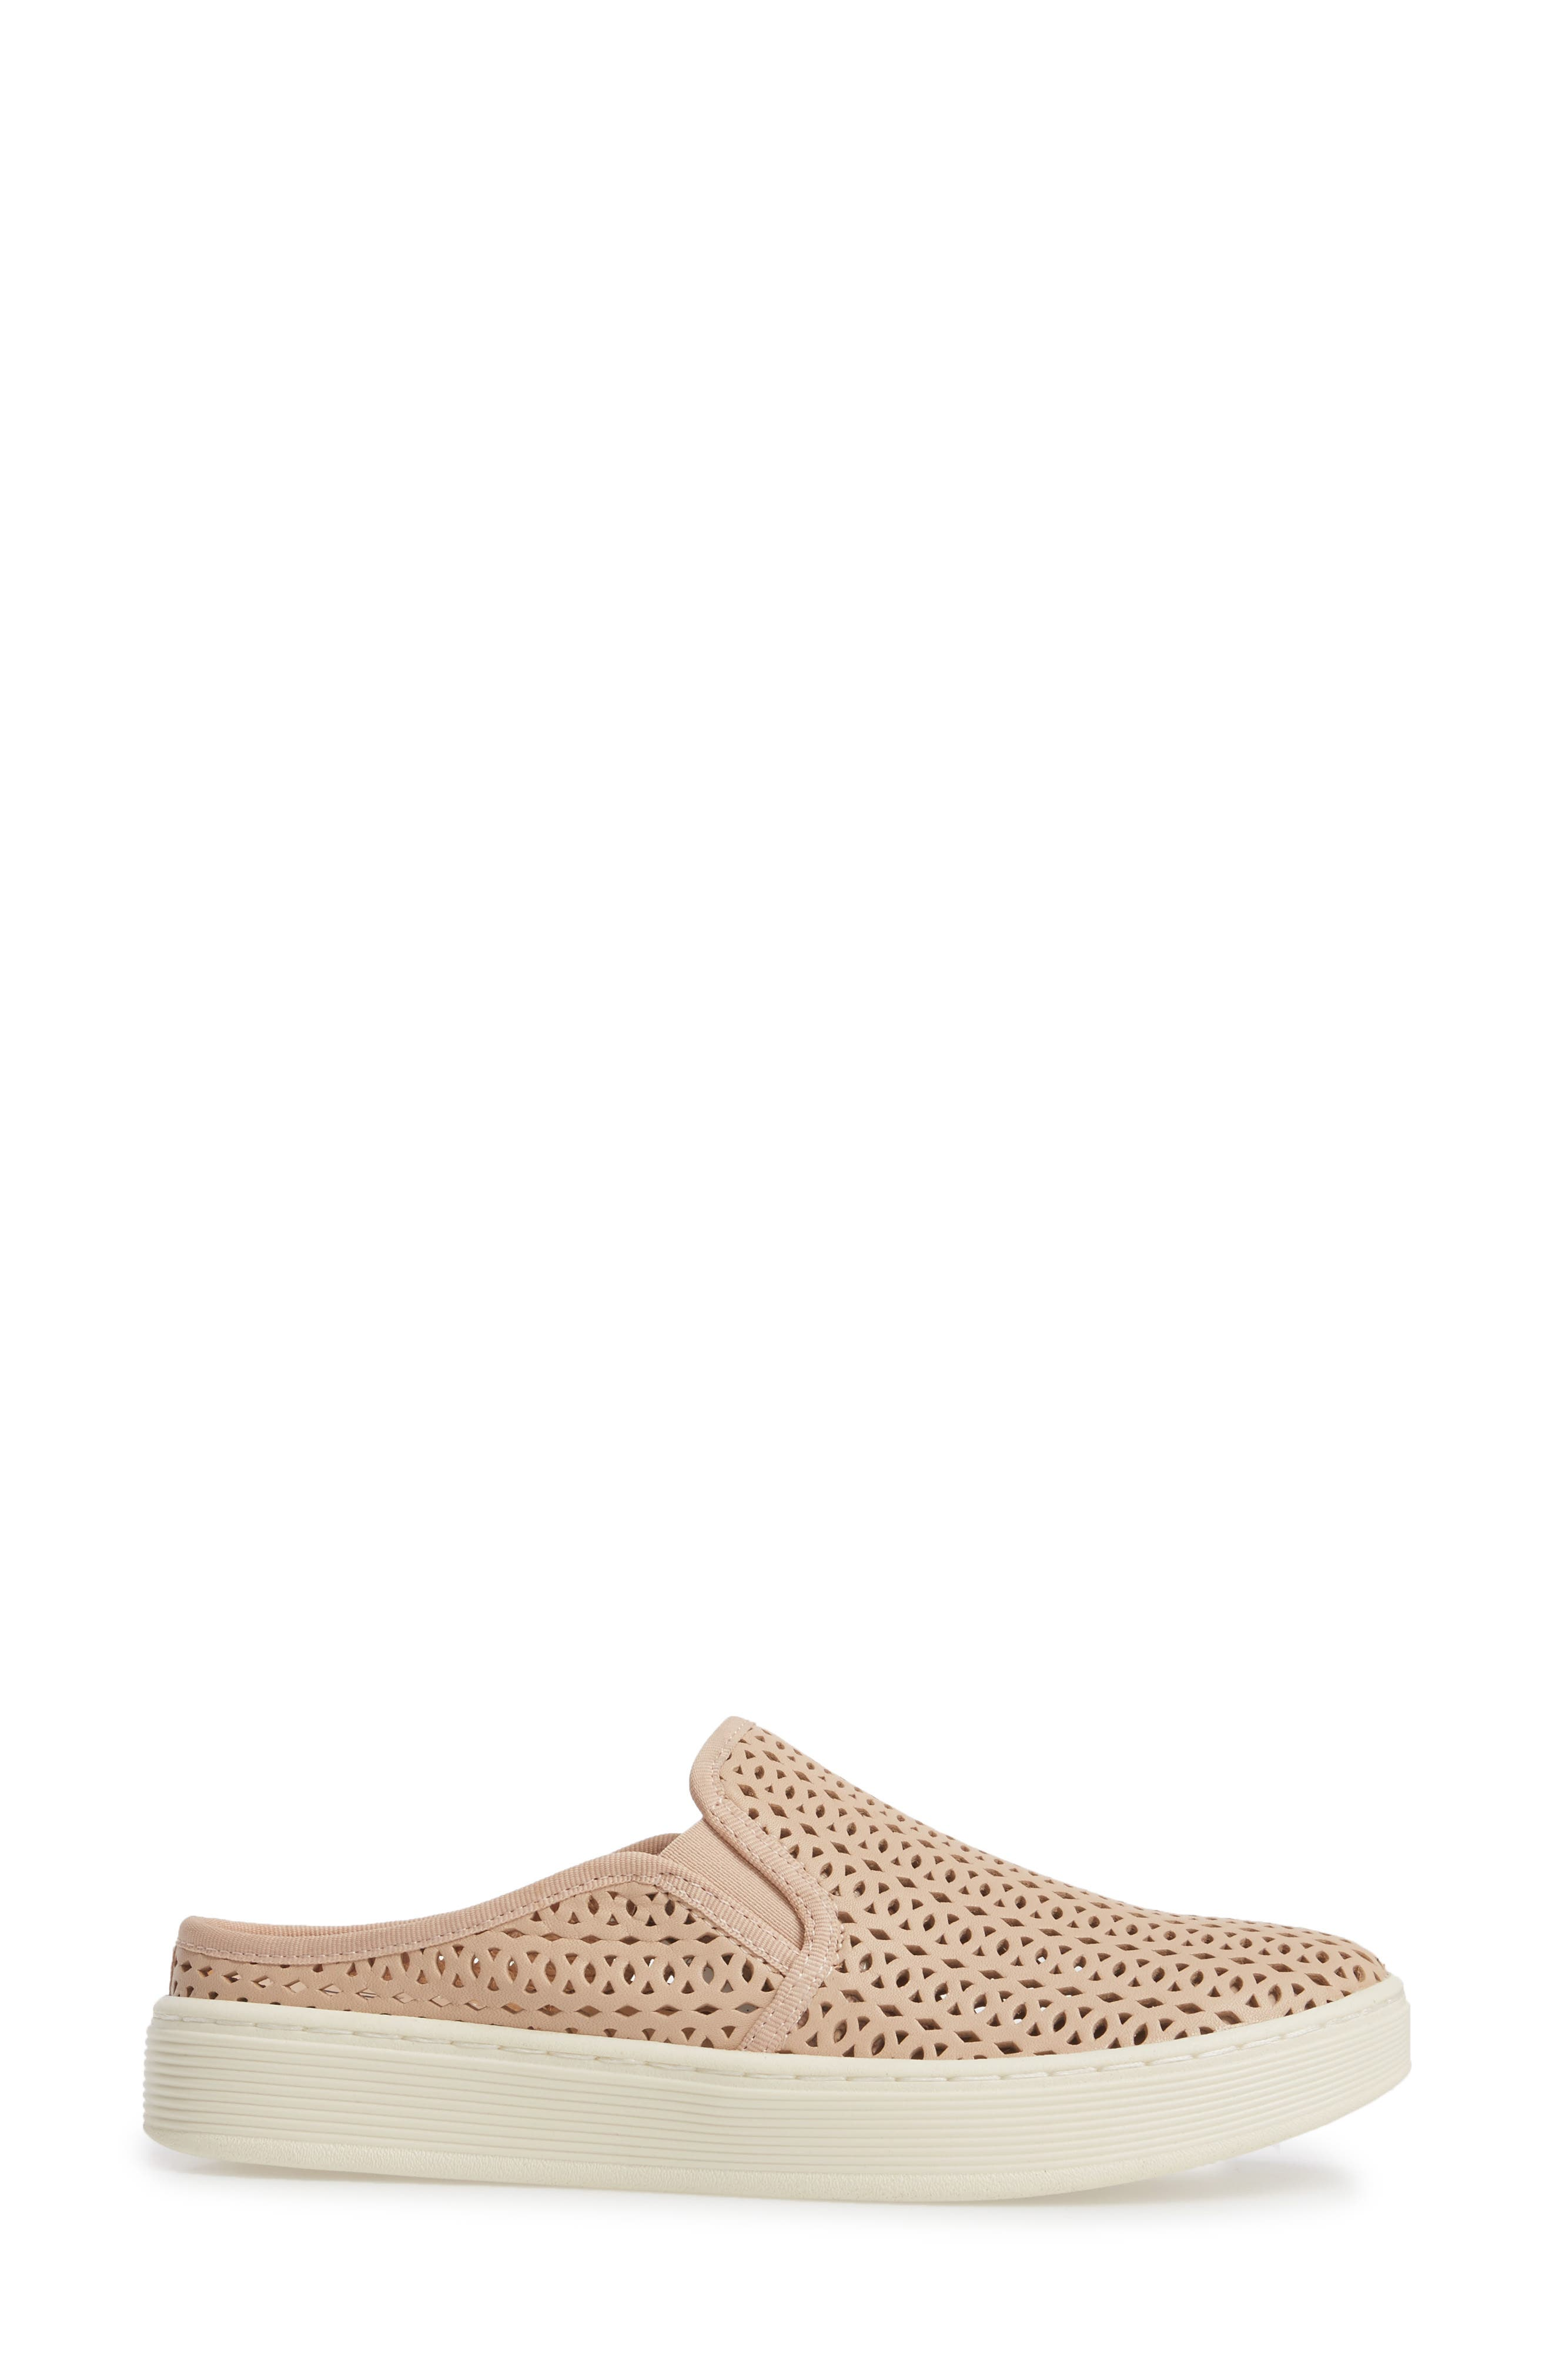 Somers II Sneaker Mule,                             Alternate thumbnail 3, color,                             Blush Leather